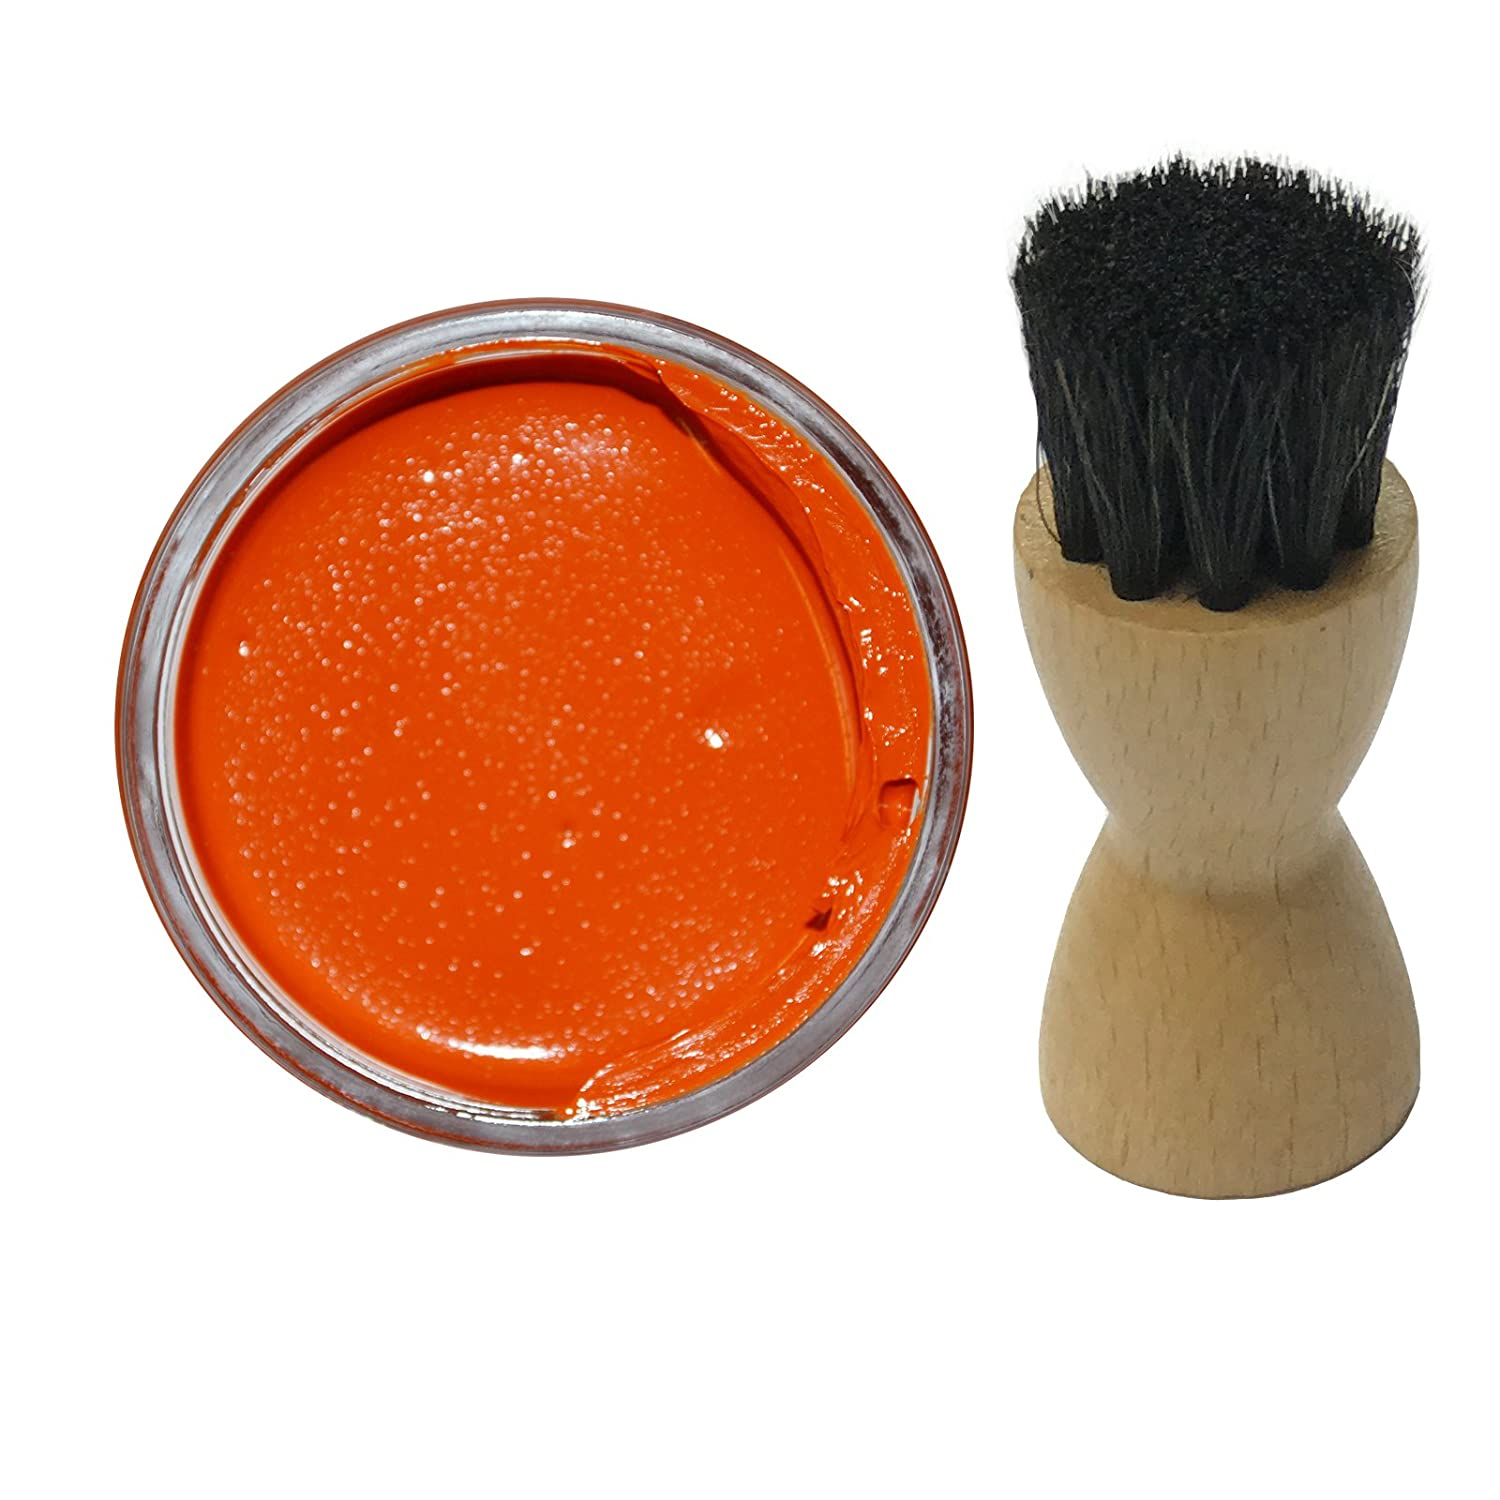 Famaco ORANGE Shoe Cream Polish 50ml & Famaco Application Brush